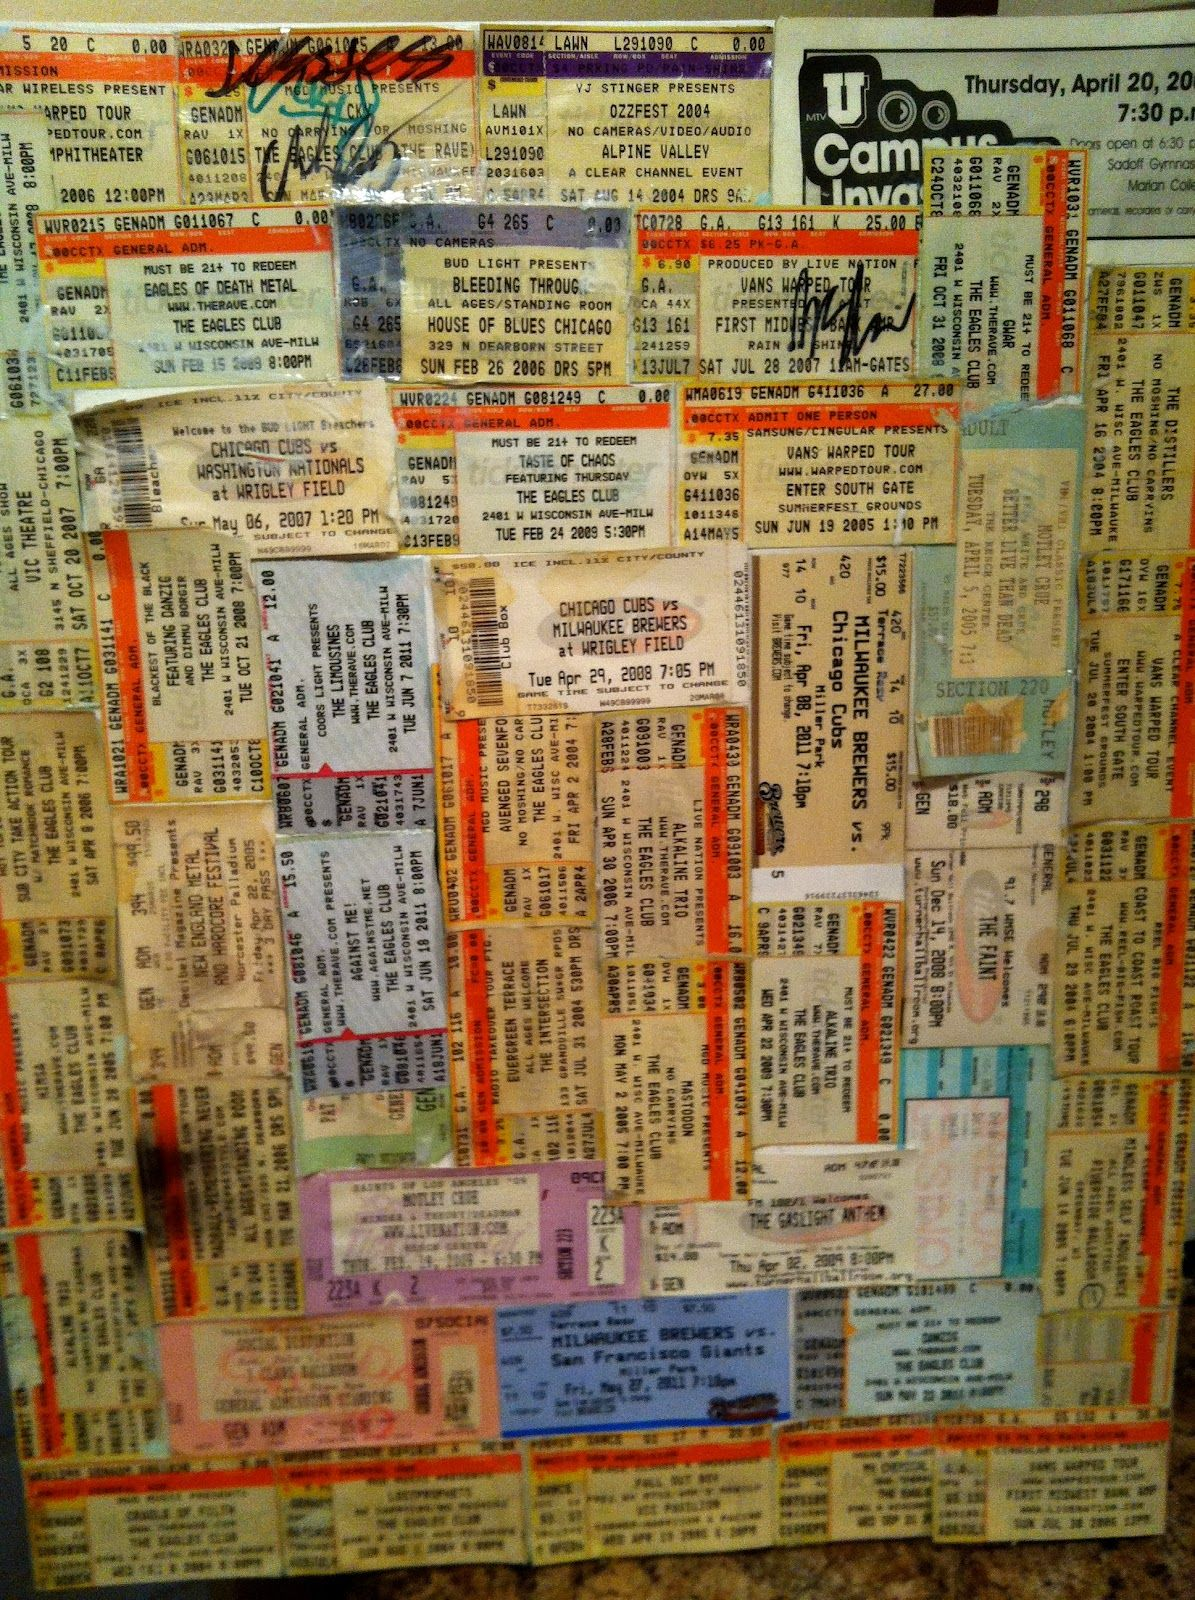 Delightful I Have So Many Concert Tickets, Going To Make A Large Frame! Concert Ticket  Make Concert Tickets